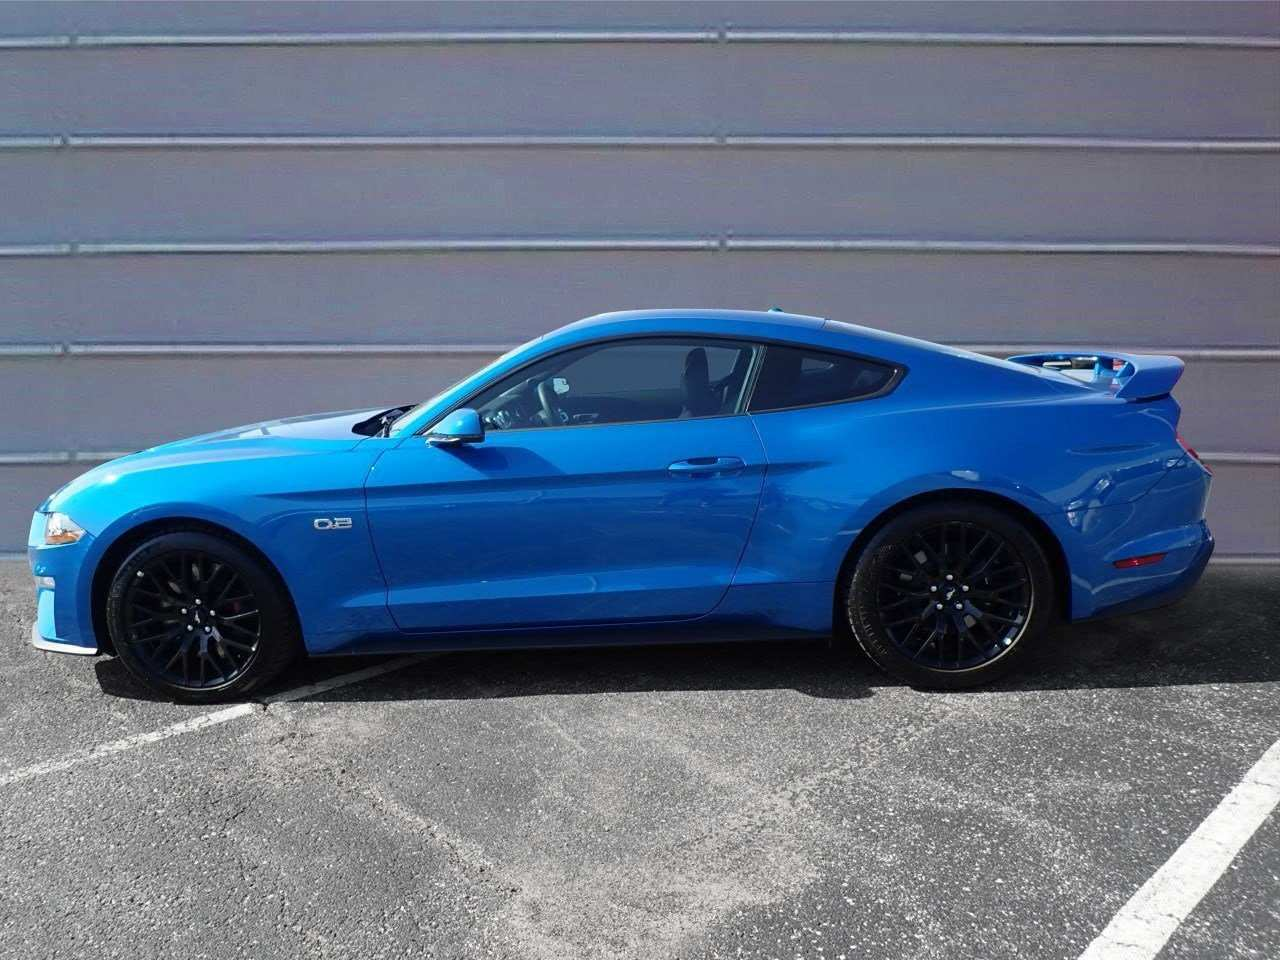 89 Best Review 2019 Ford Mustang Gt Premium Wallpaper with 2019 Ford Mustang Gt Premium